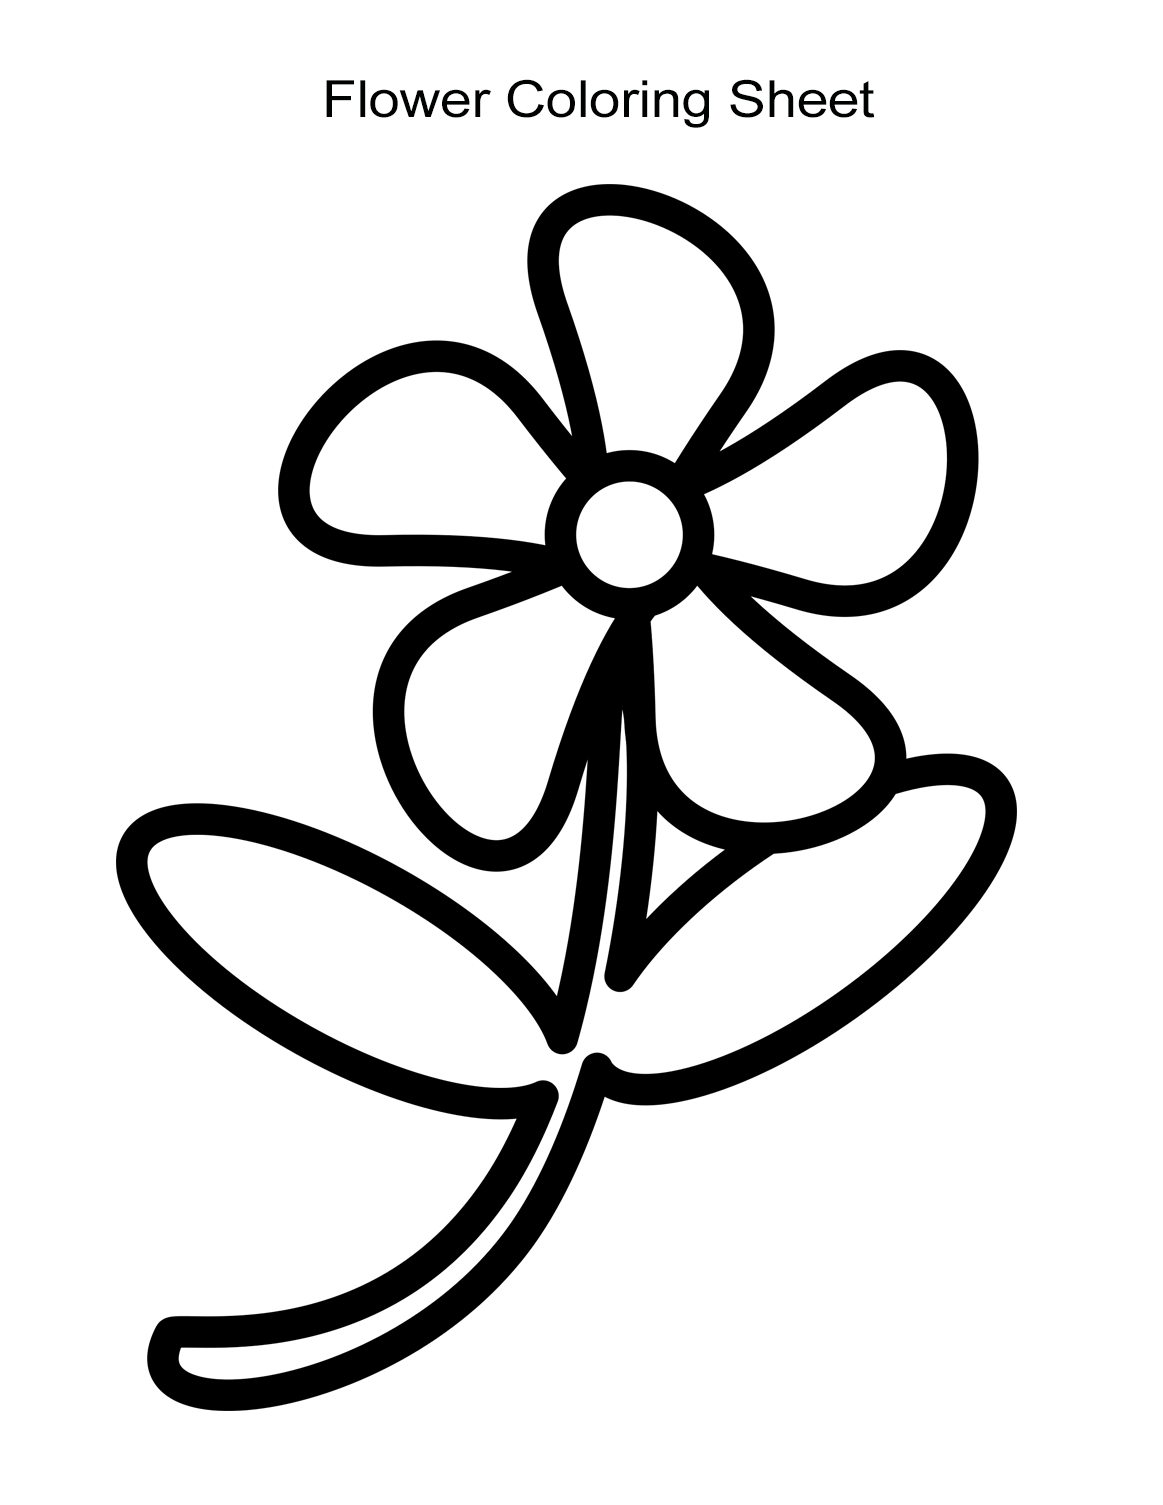 picture of a flower to color free printable flower coloring pages 16 pics how to a of picture flower color to